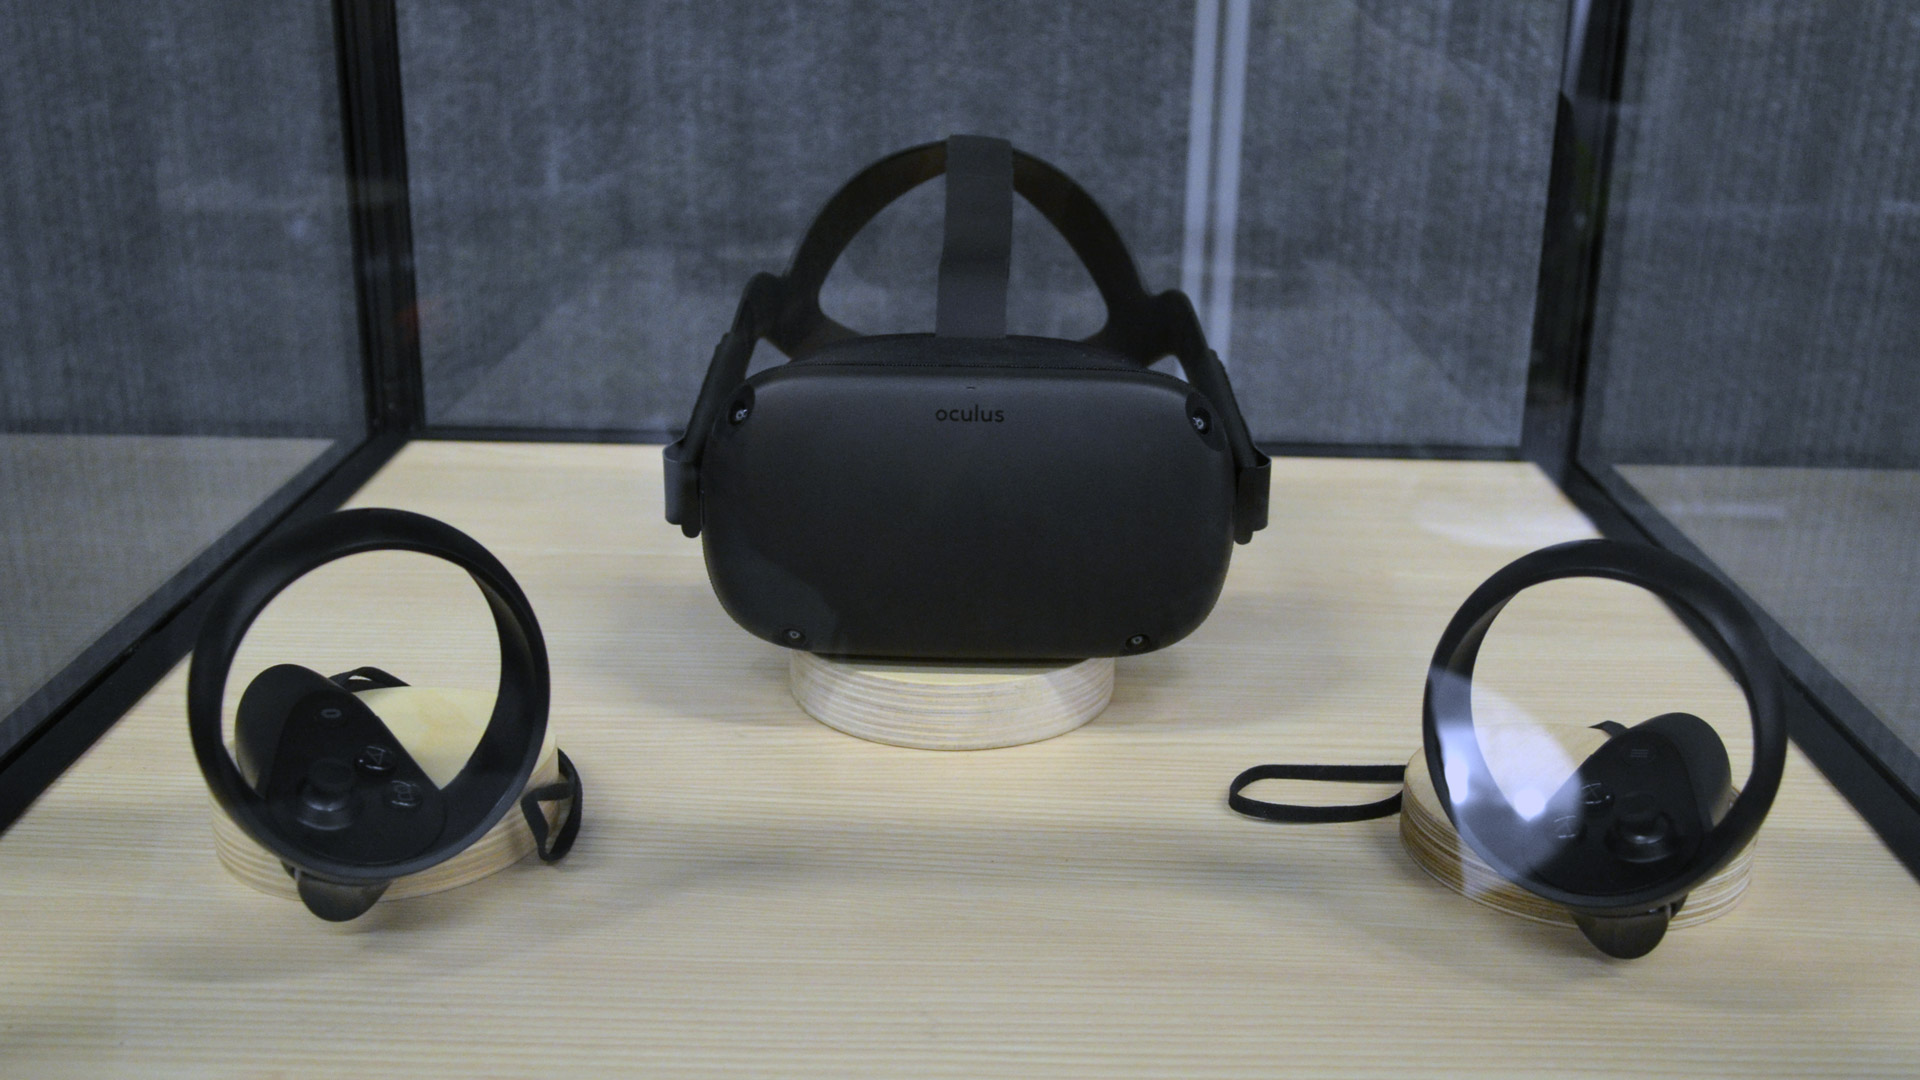 Oculus Connect 5: Oculus Quest Hands-on and Tech Details